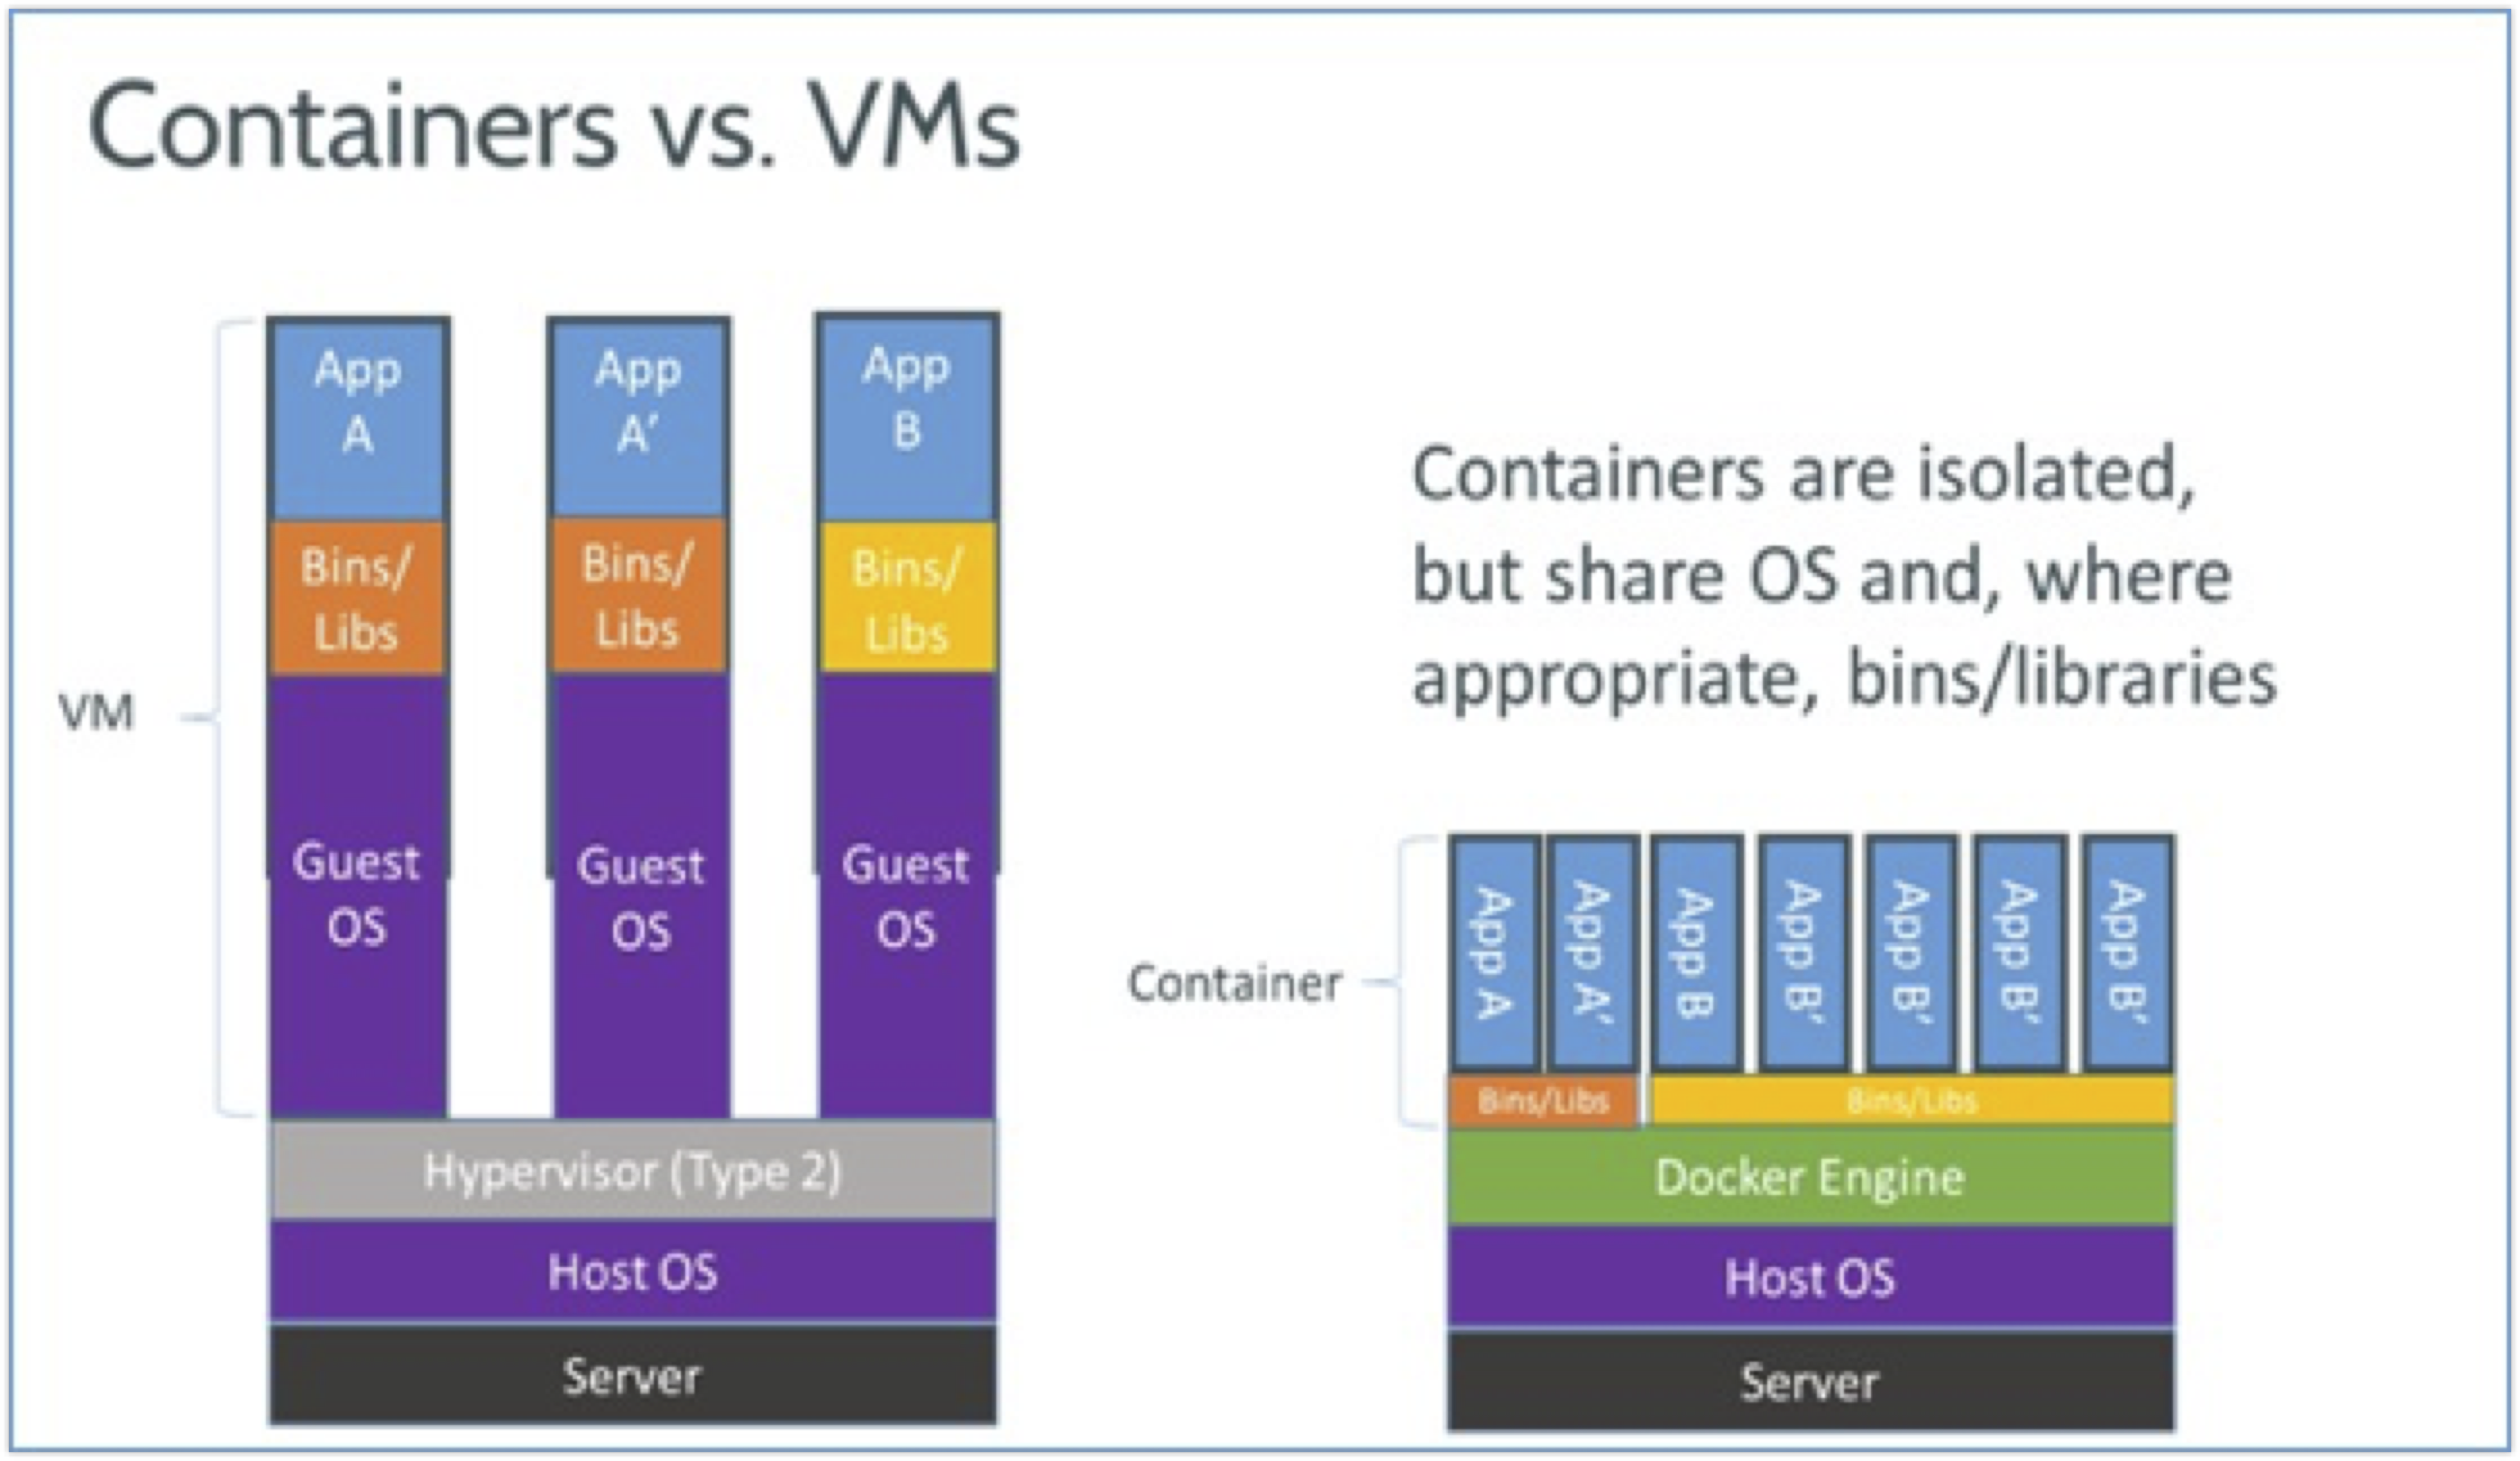 images/containers-vs-vm.png